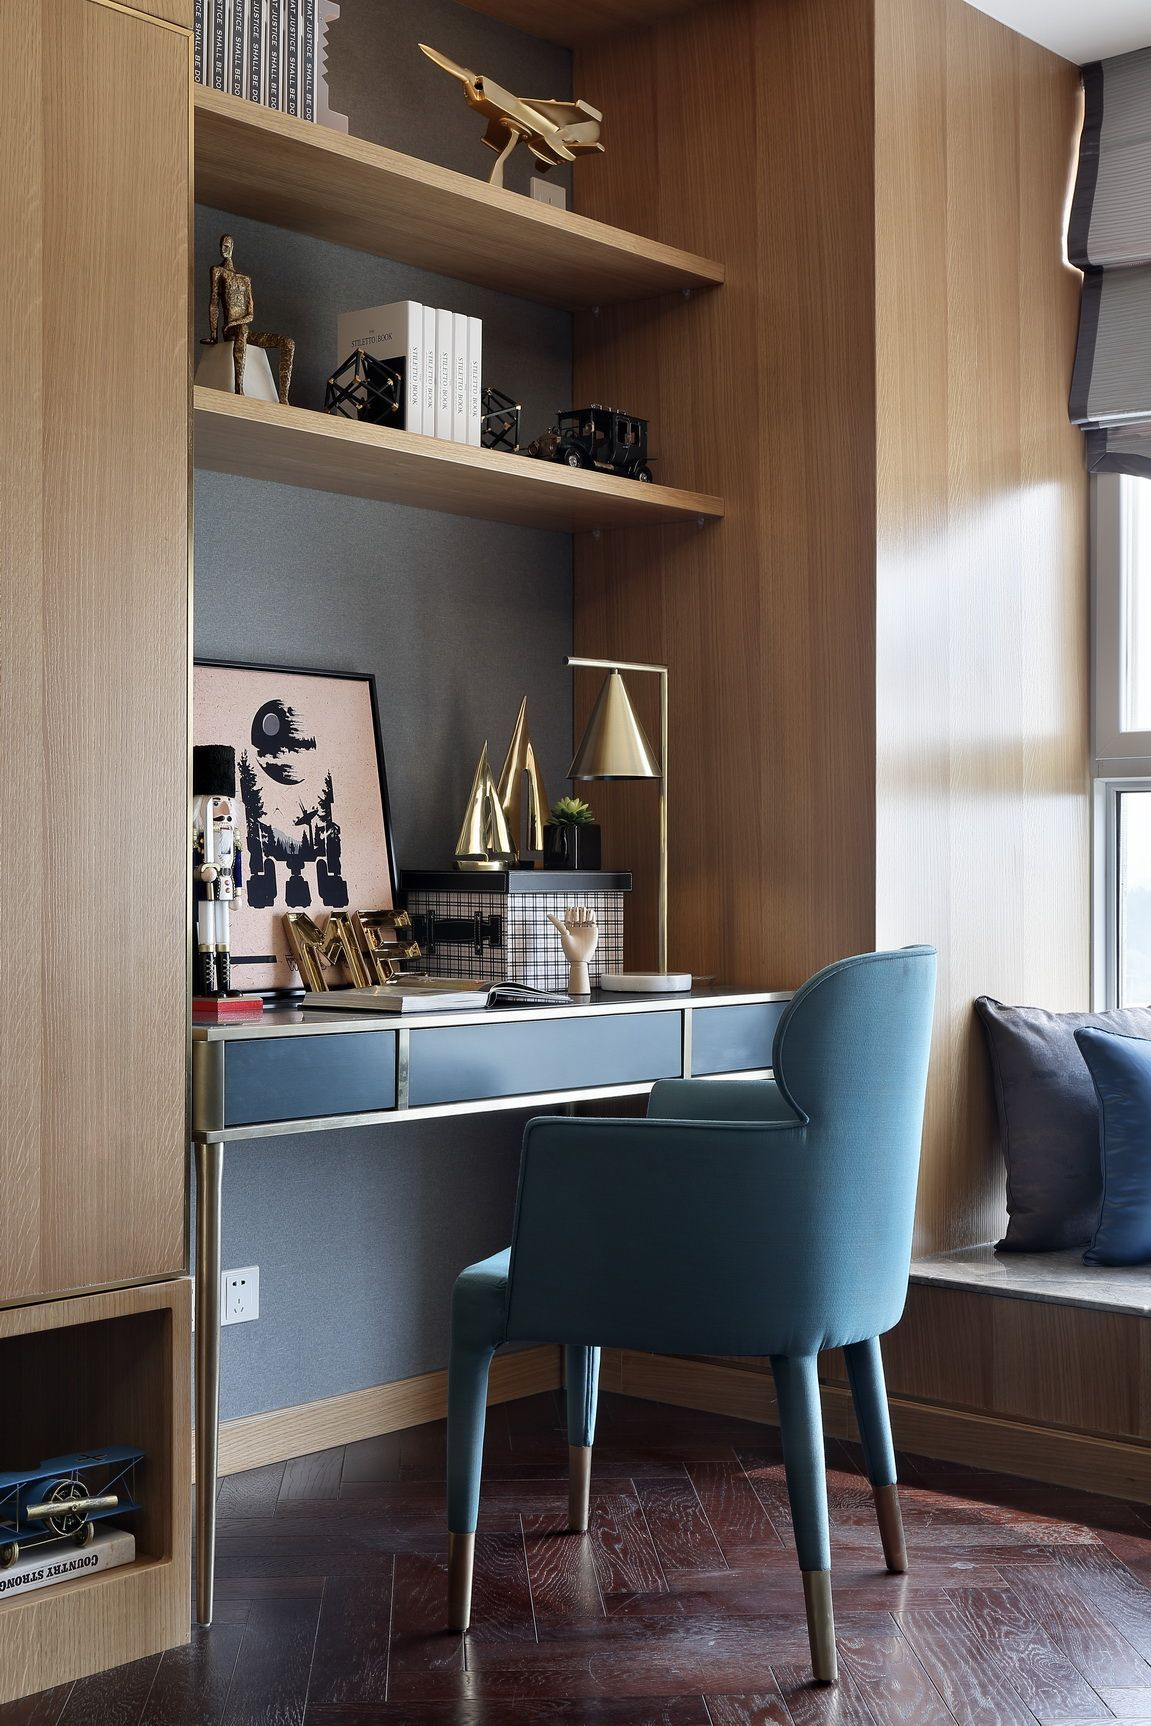 Pin by Kathy Kuo on Office Modern home interior design